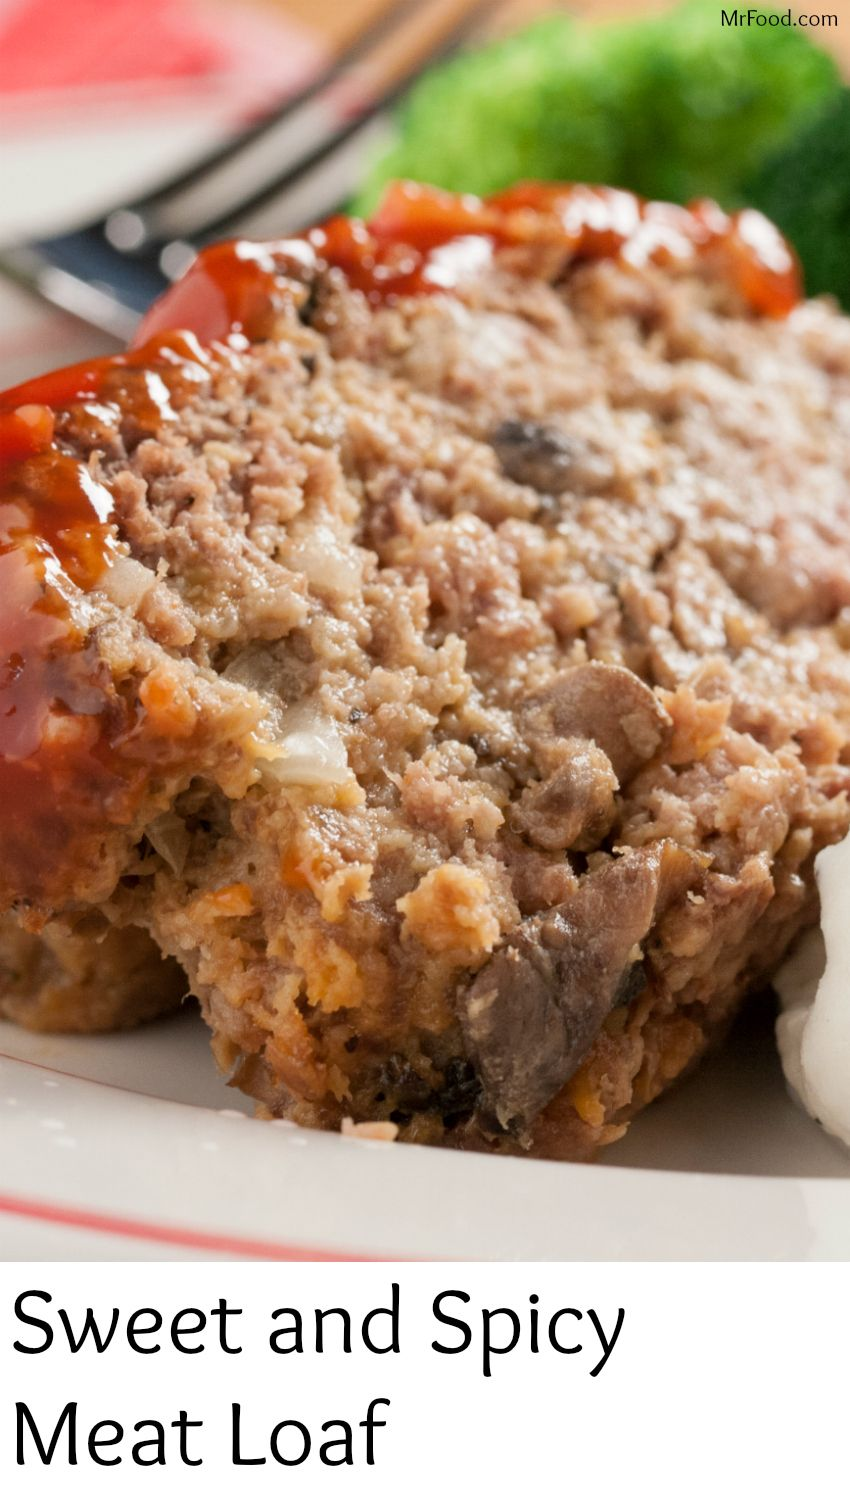 Sweet and Spicy Meat Loaf | Recipe | Sweet and spicy ...